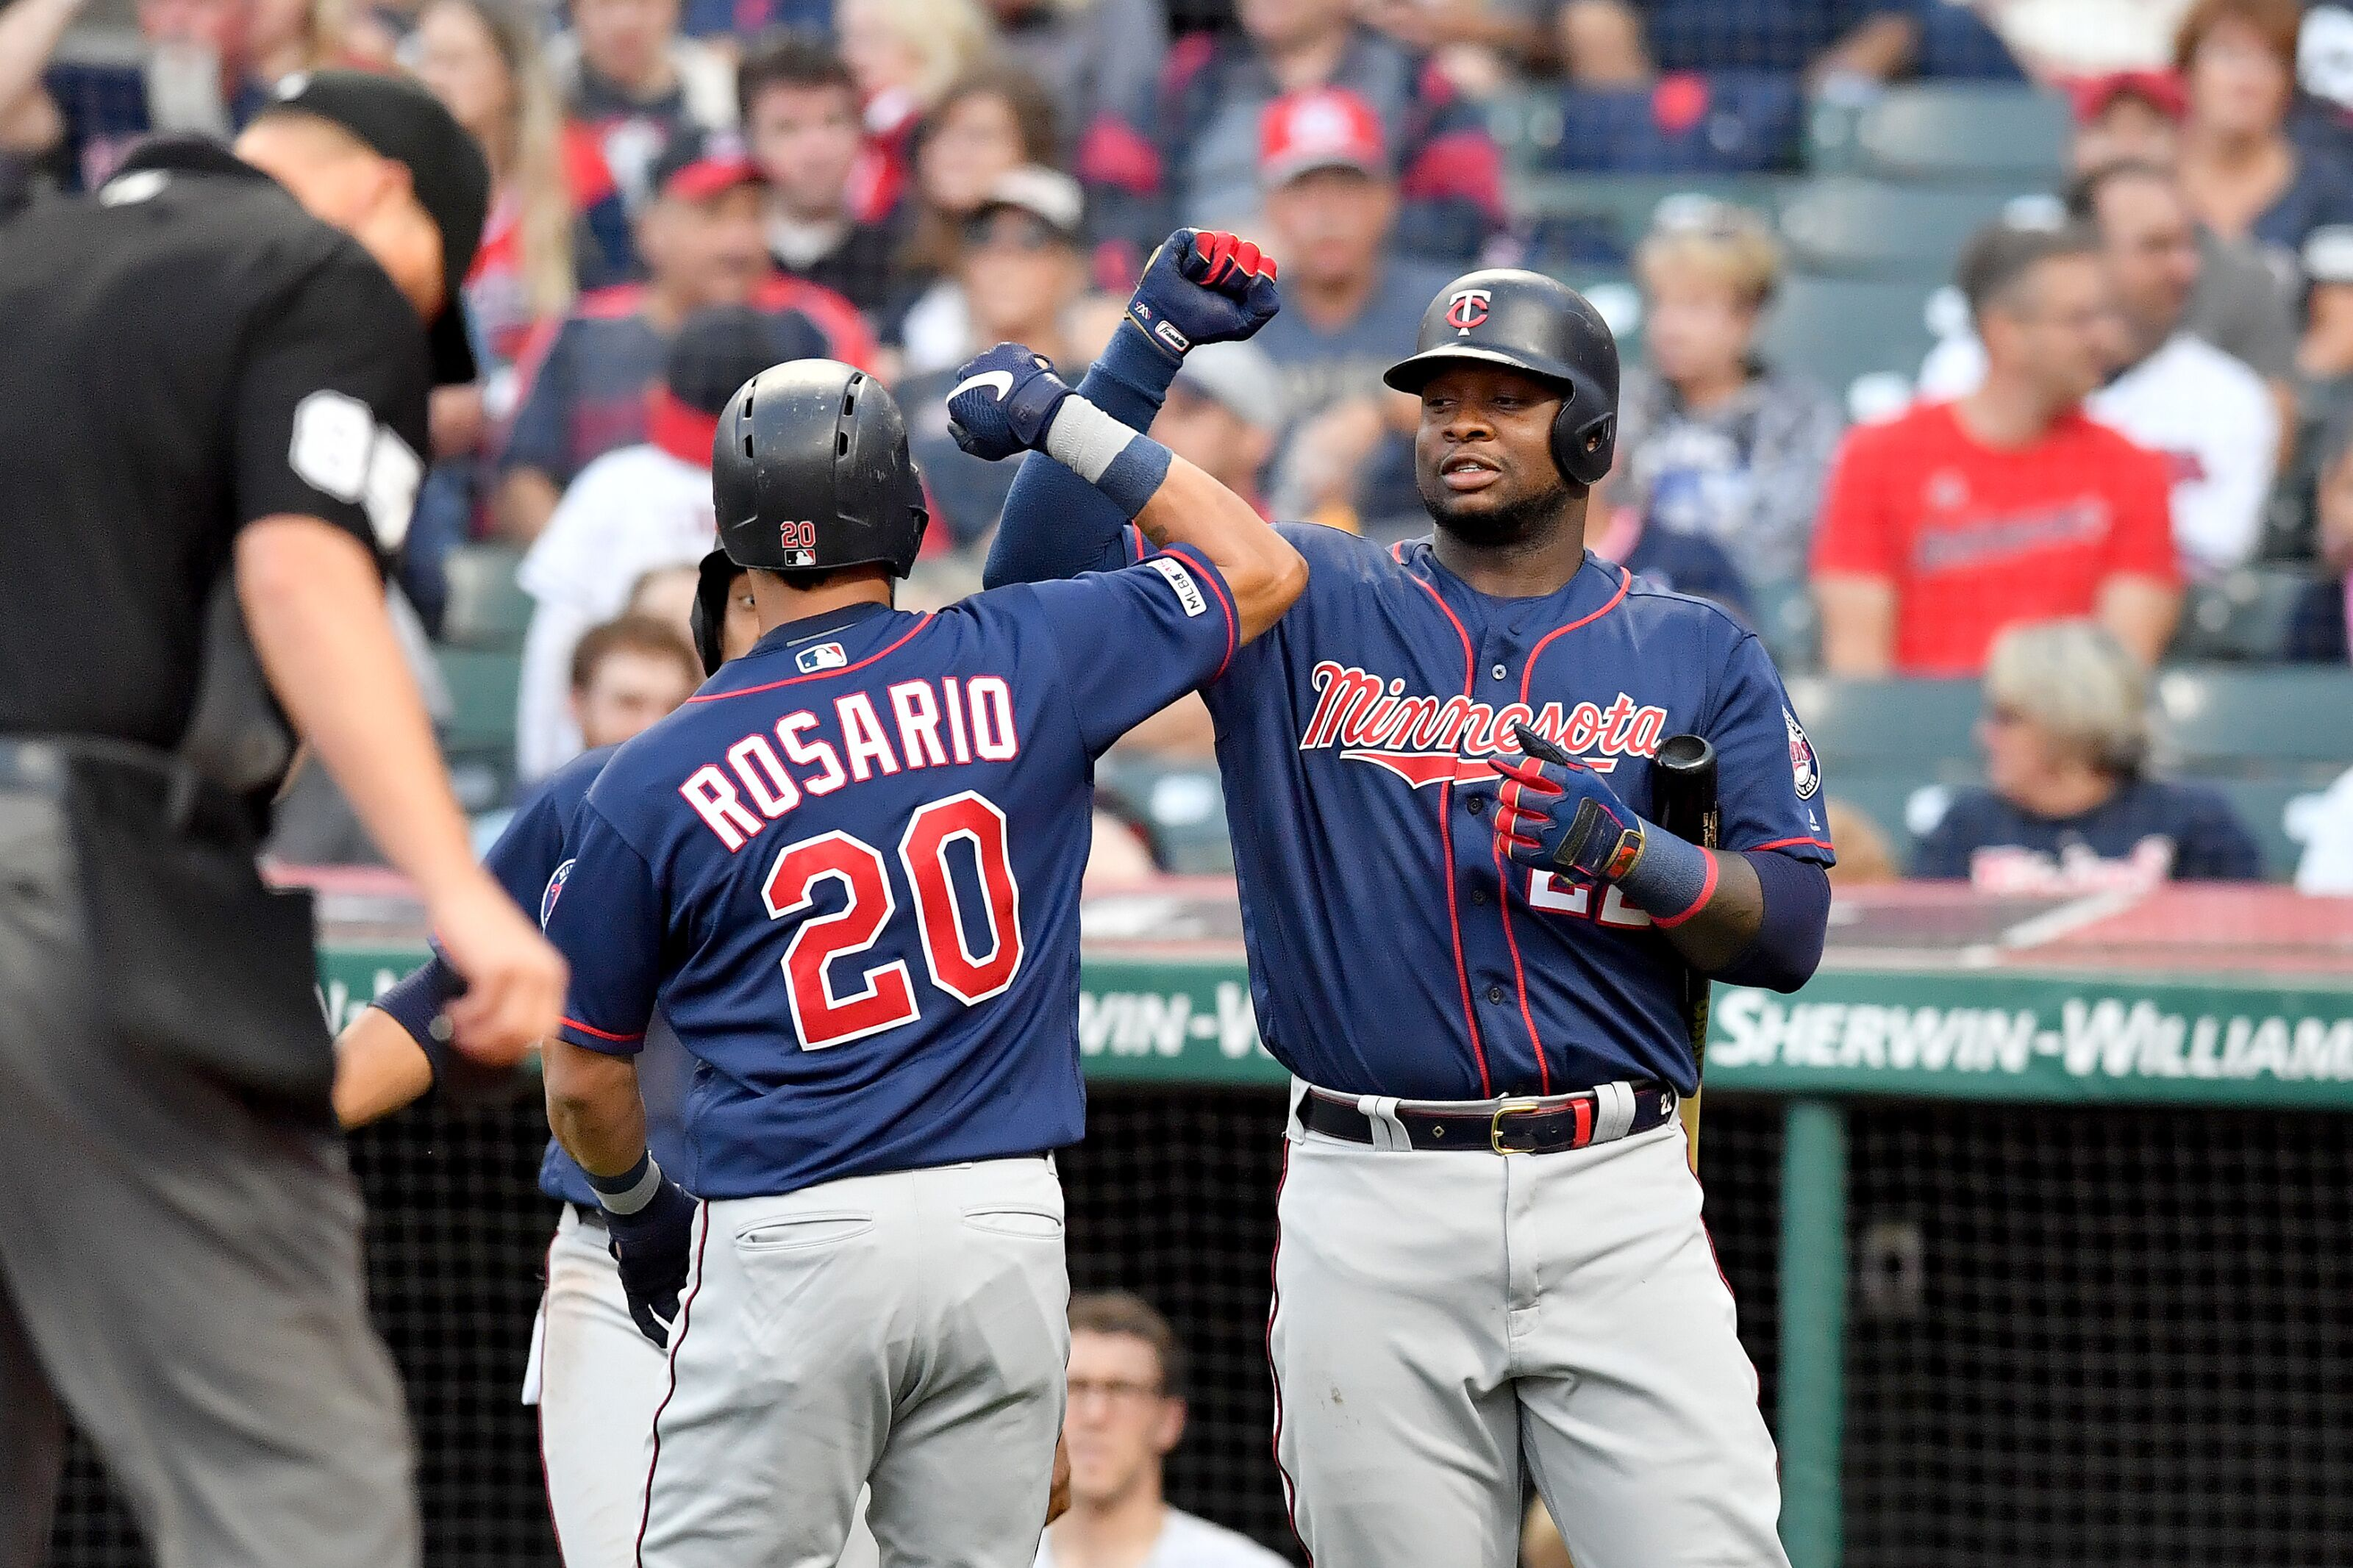 Minnesota Twins: What would happen if the Twins faced the Houston Astros in the postseason?